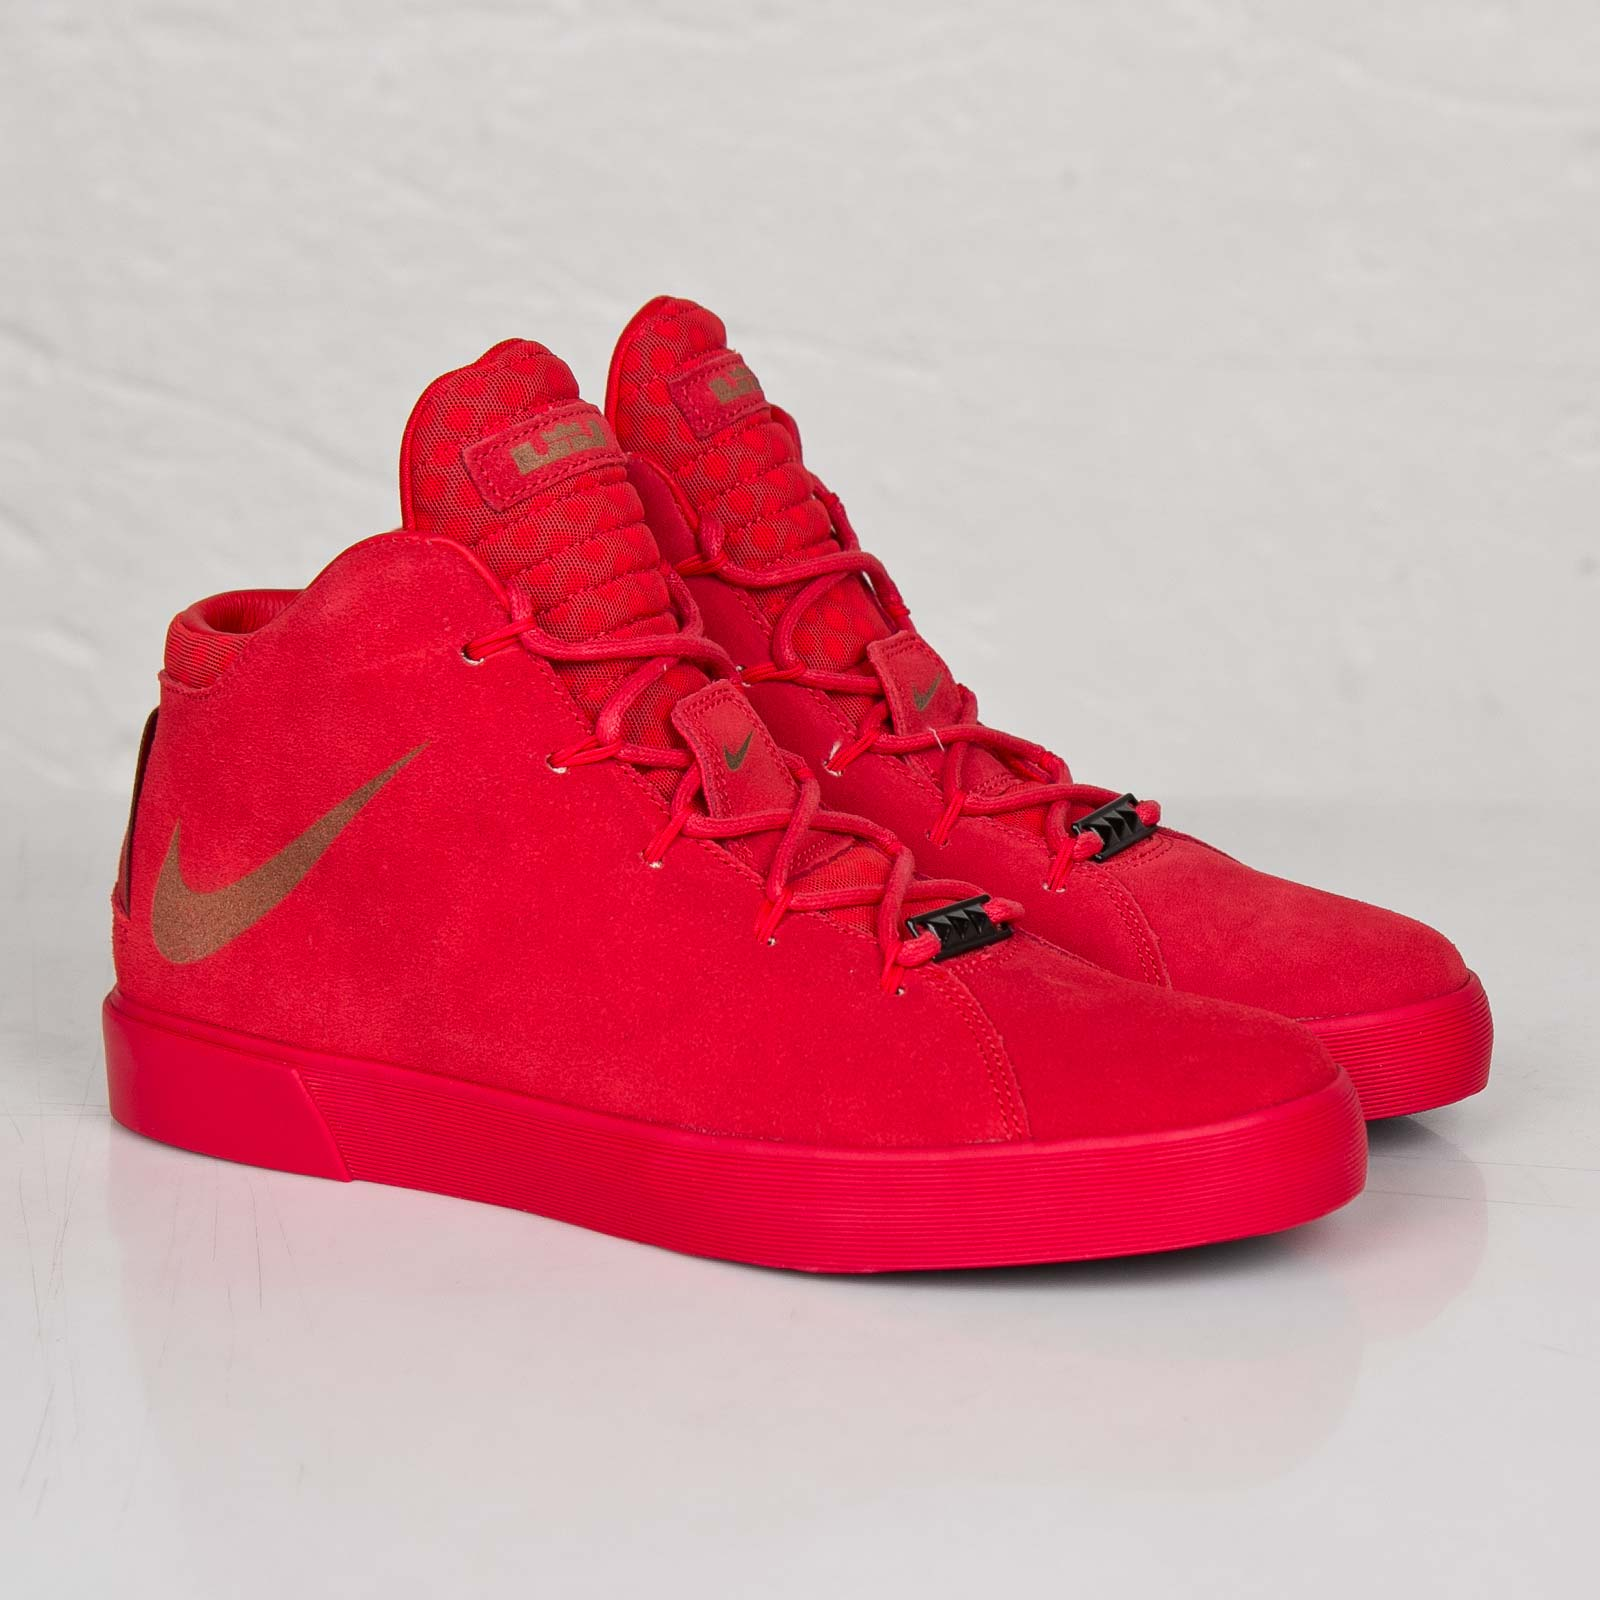 new concept d2cef df7a6 Nike Lebron XII NSW Lifestyle QS